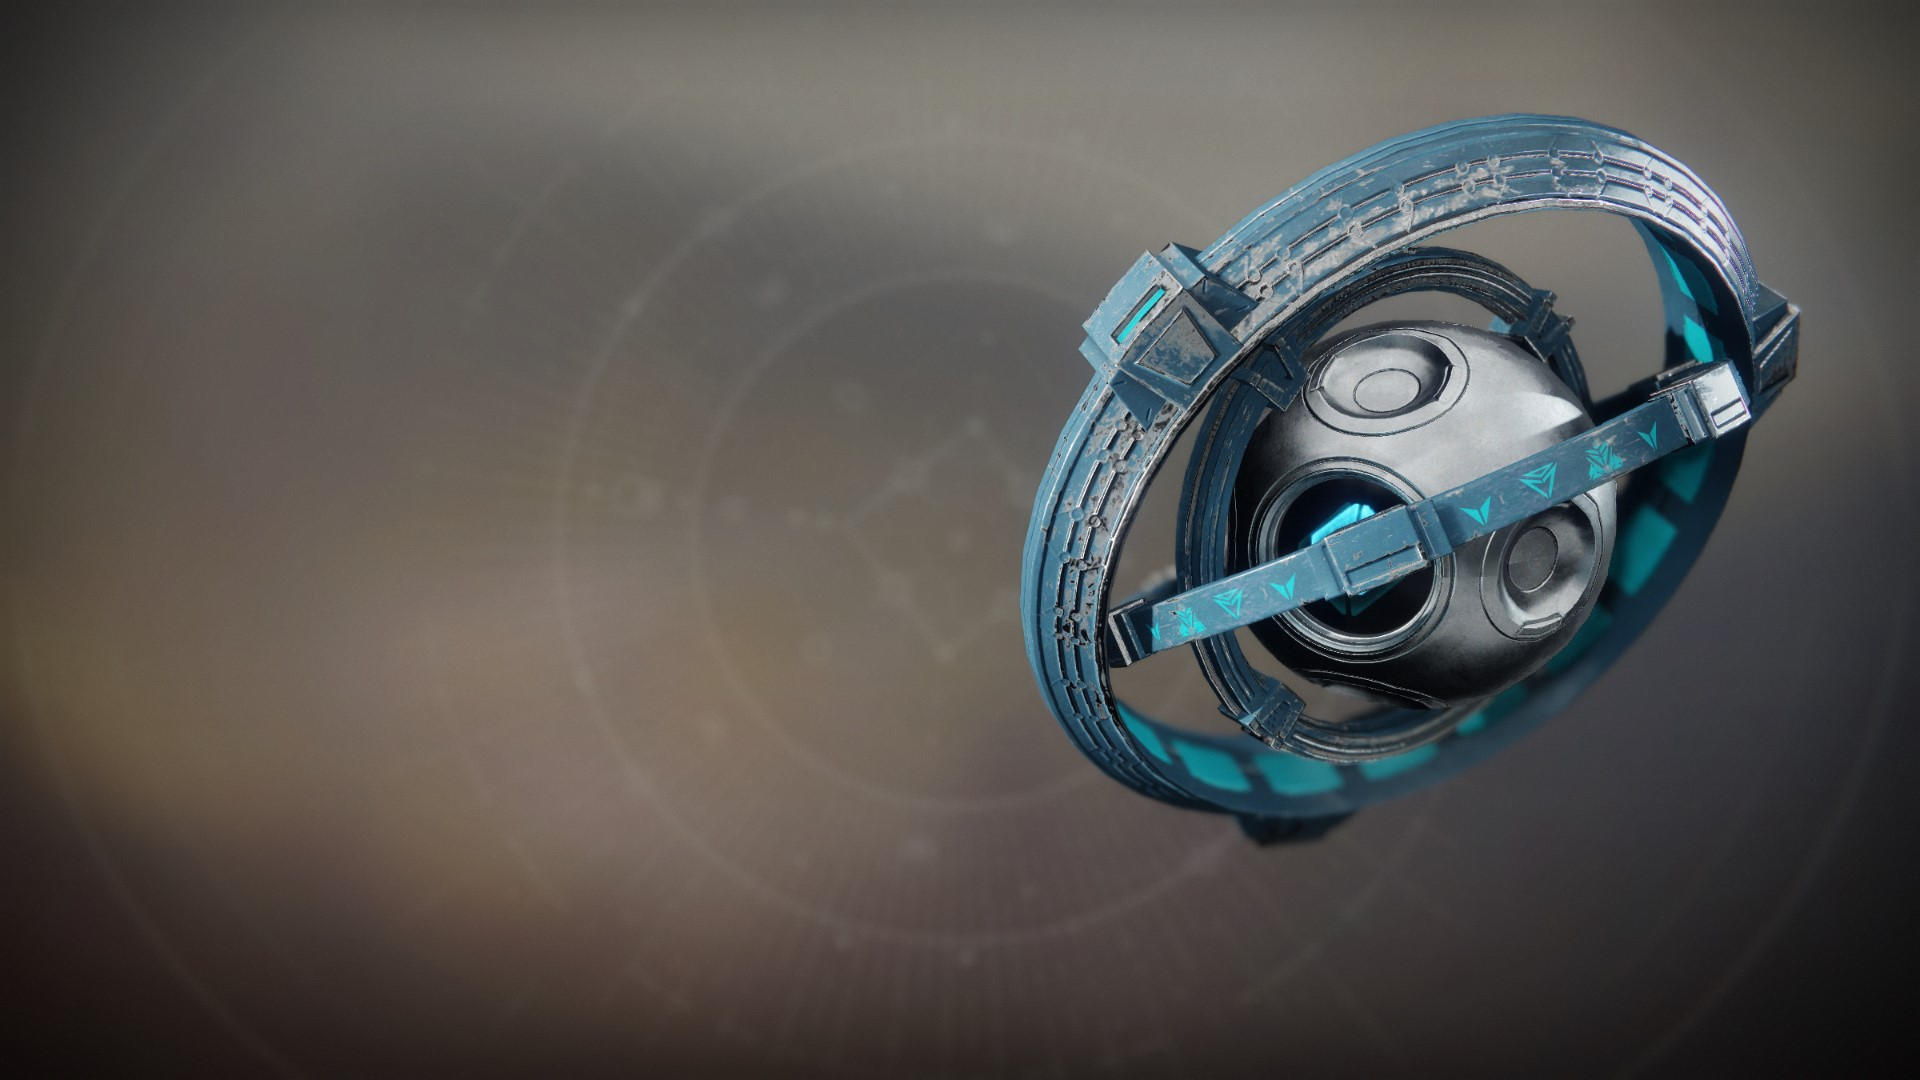 An in-game render of the Gyro Shell.